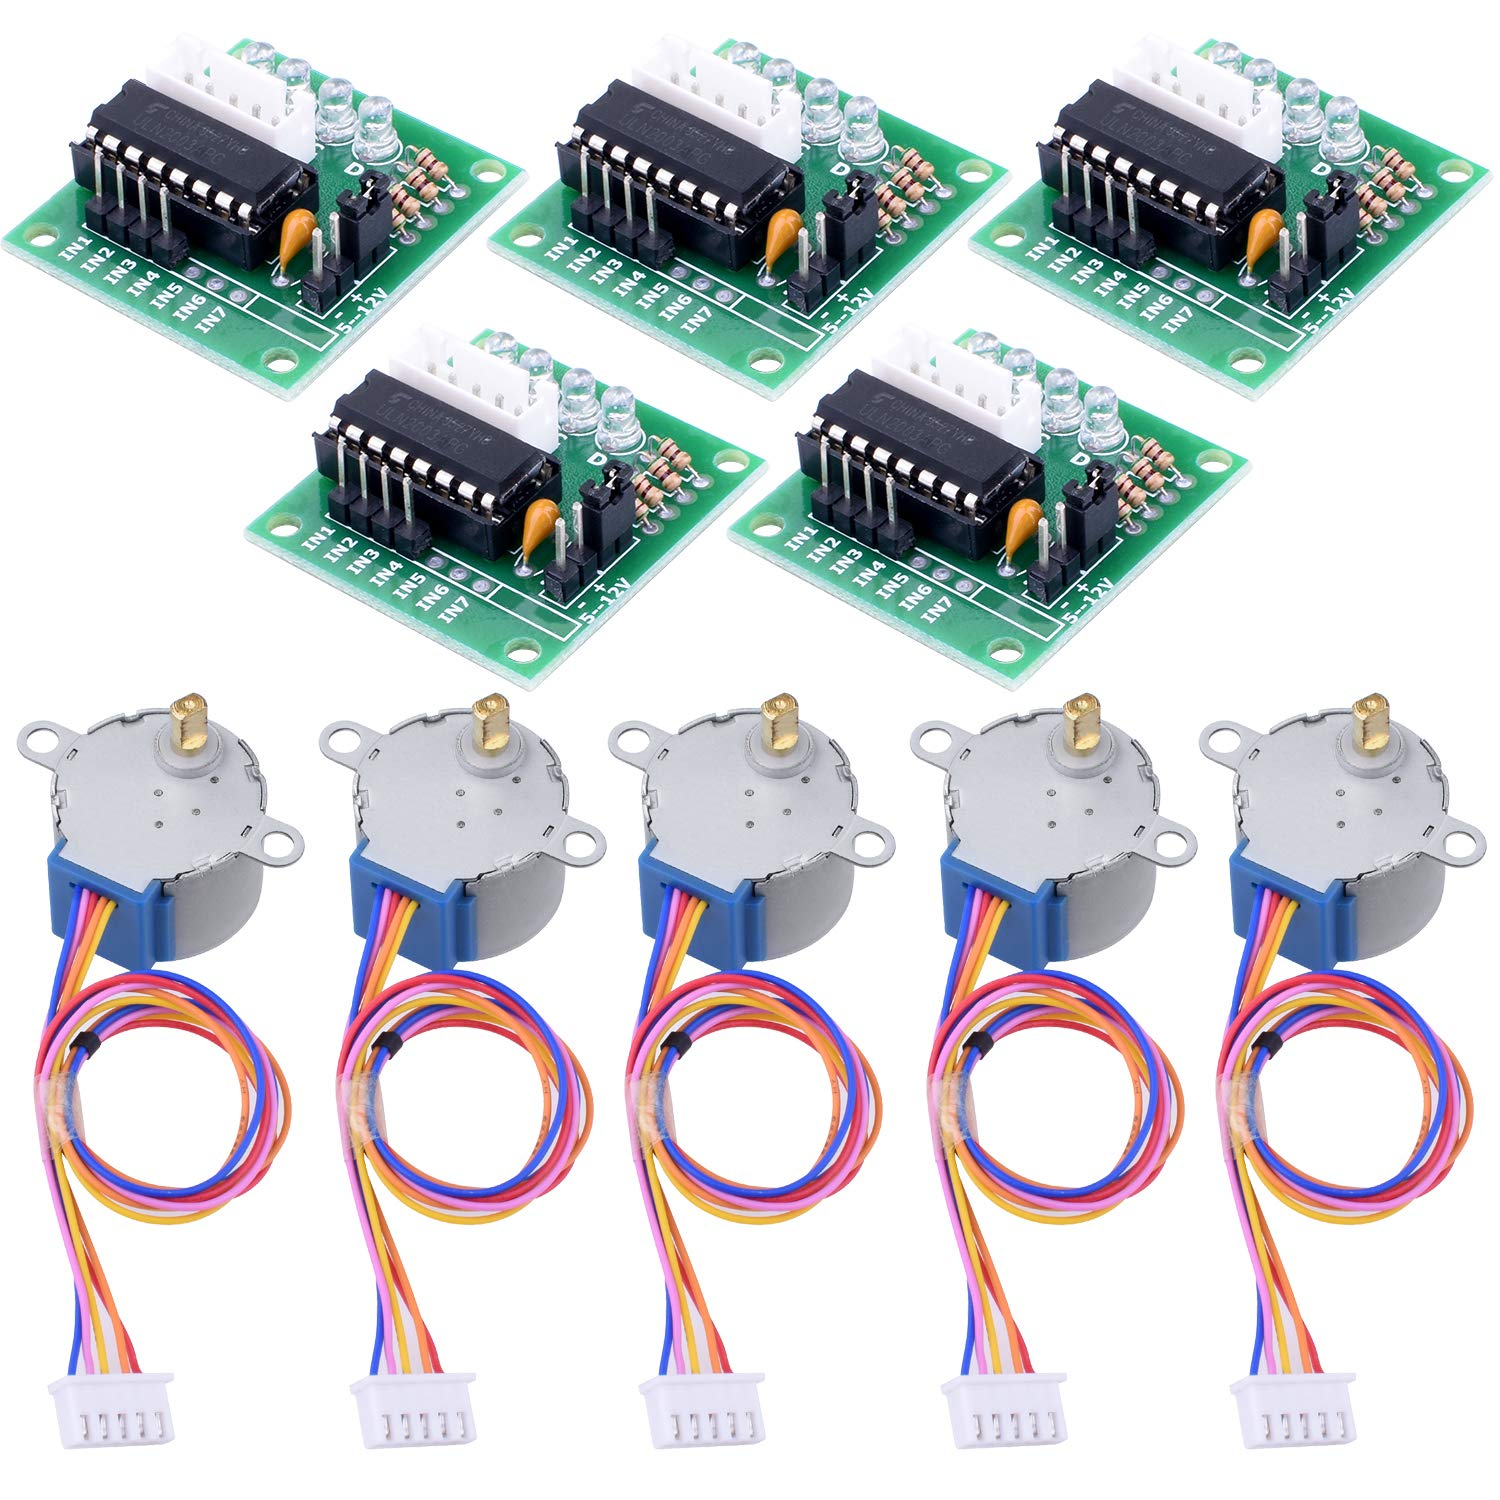 Longruner 5X Geared Stepper Motor 28byj 48 Uln2003 5v Stepper Motor Uln2003  Driver Board for arduino (with Wire)